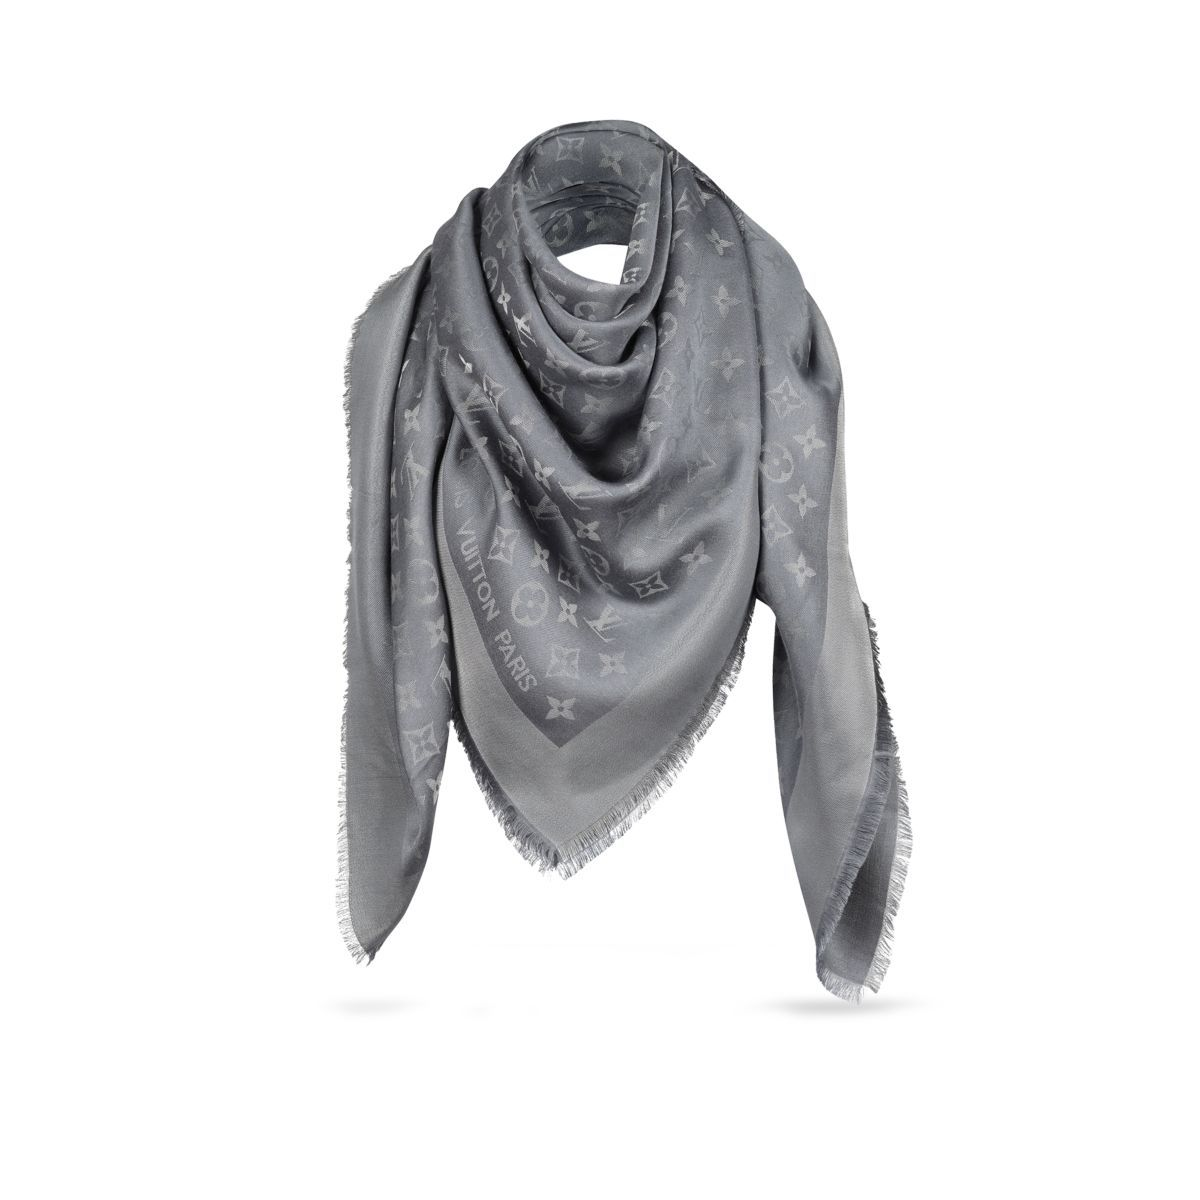 fb03988bee5 Louis Vuitton Monogram Shine Shawl in Gray (Charcoal grey)